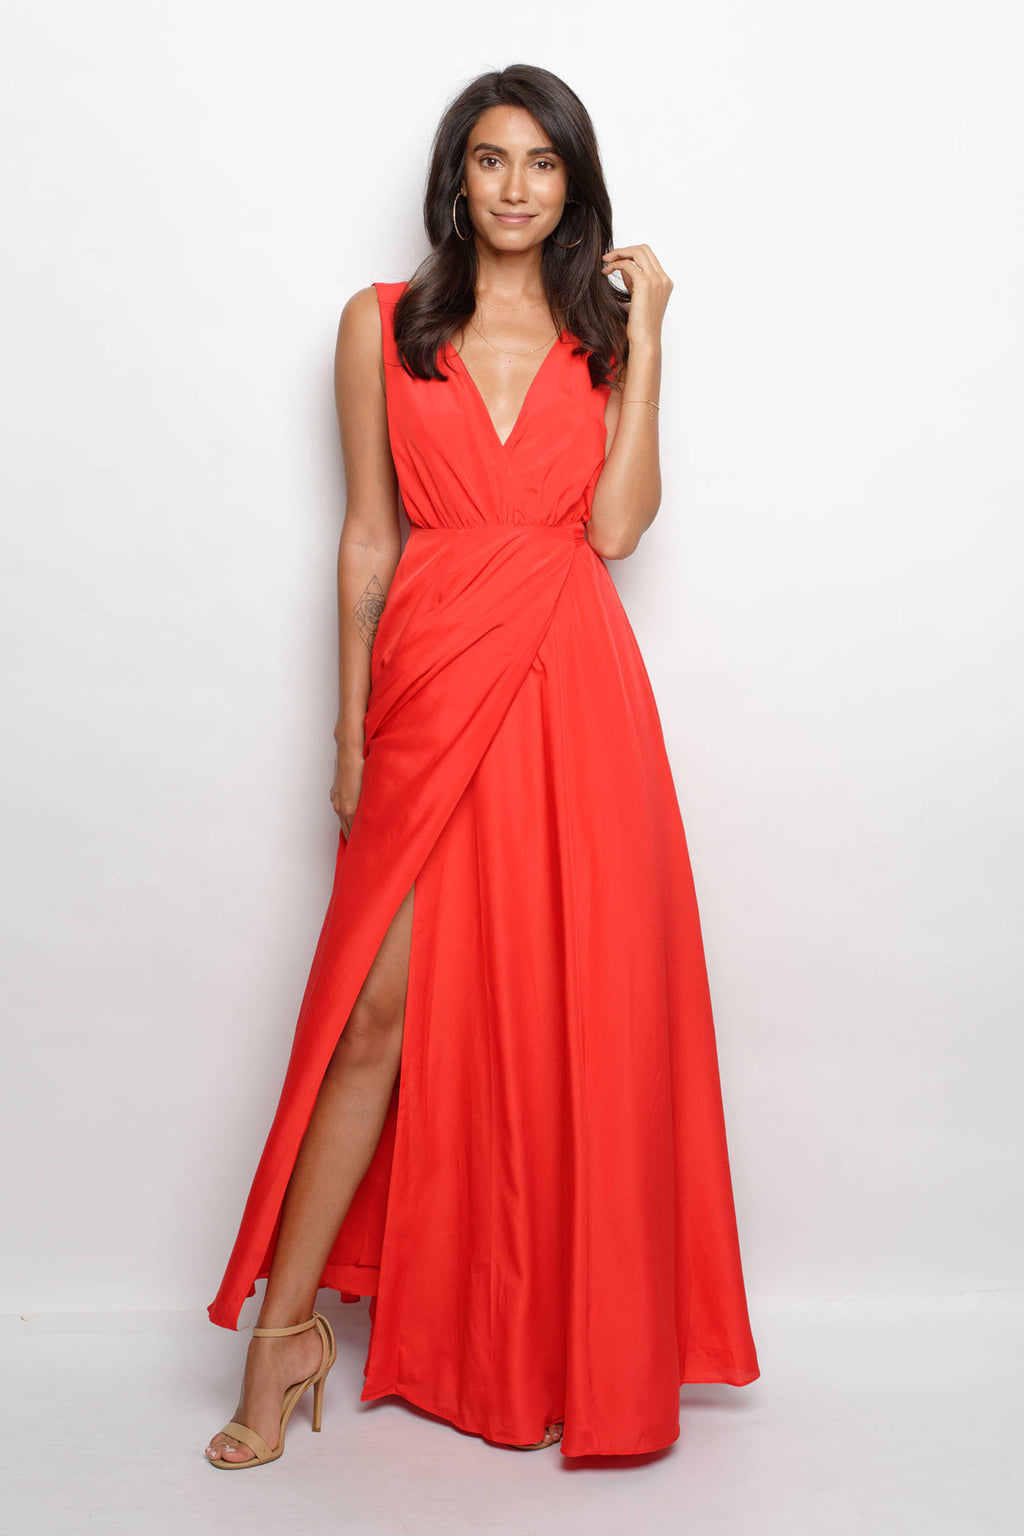 tagged-for-you-lovers+friends-leah-gown-front.jpg